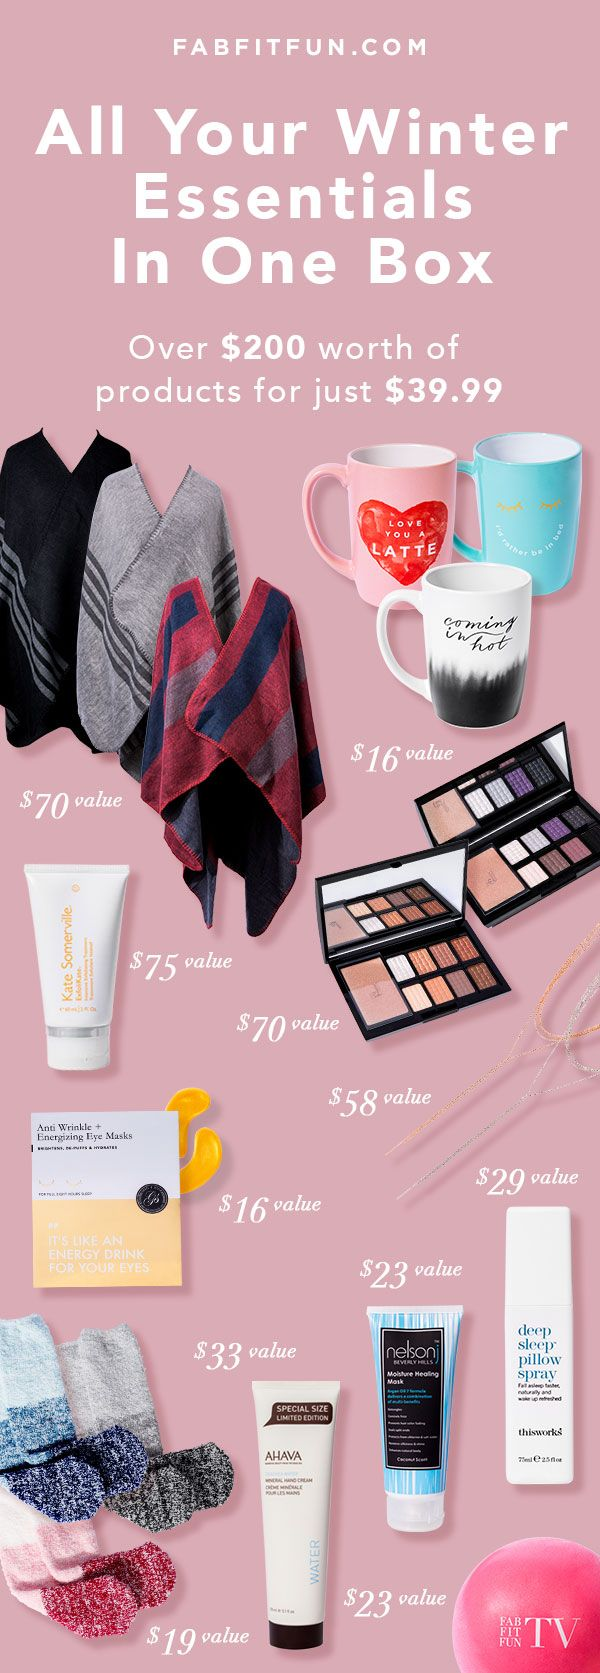 Winter is coming! Get all of this for $39.99 with code EXTRA. FabFitFun is a great way to discover the season's must have beauty, fashion, & wellness products at 70-80%!